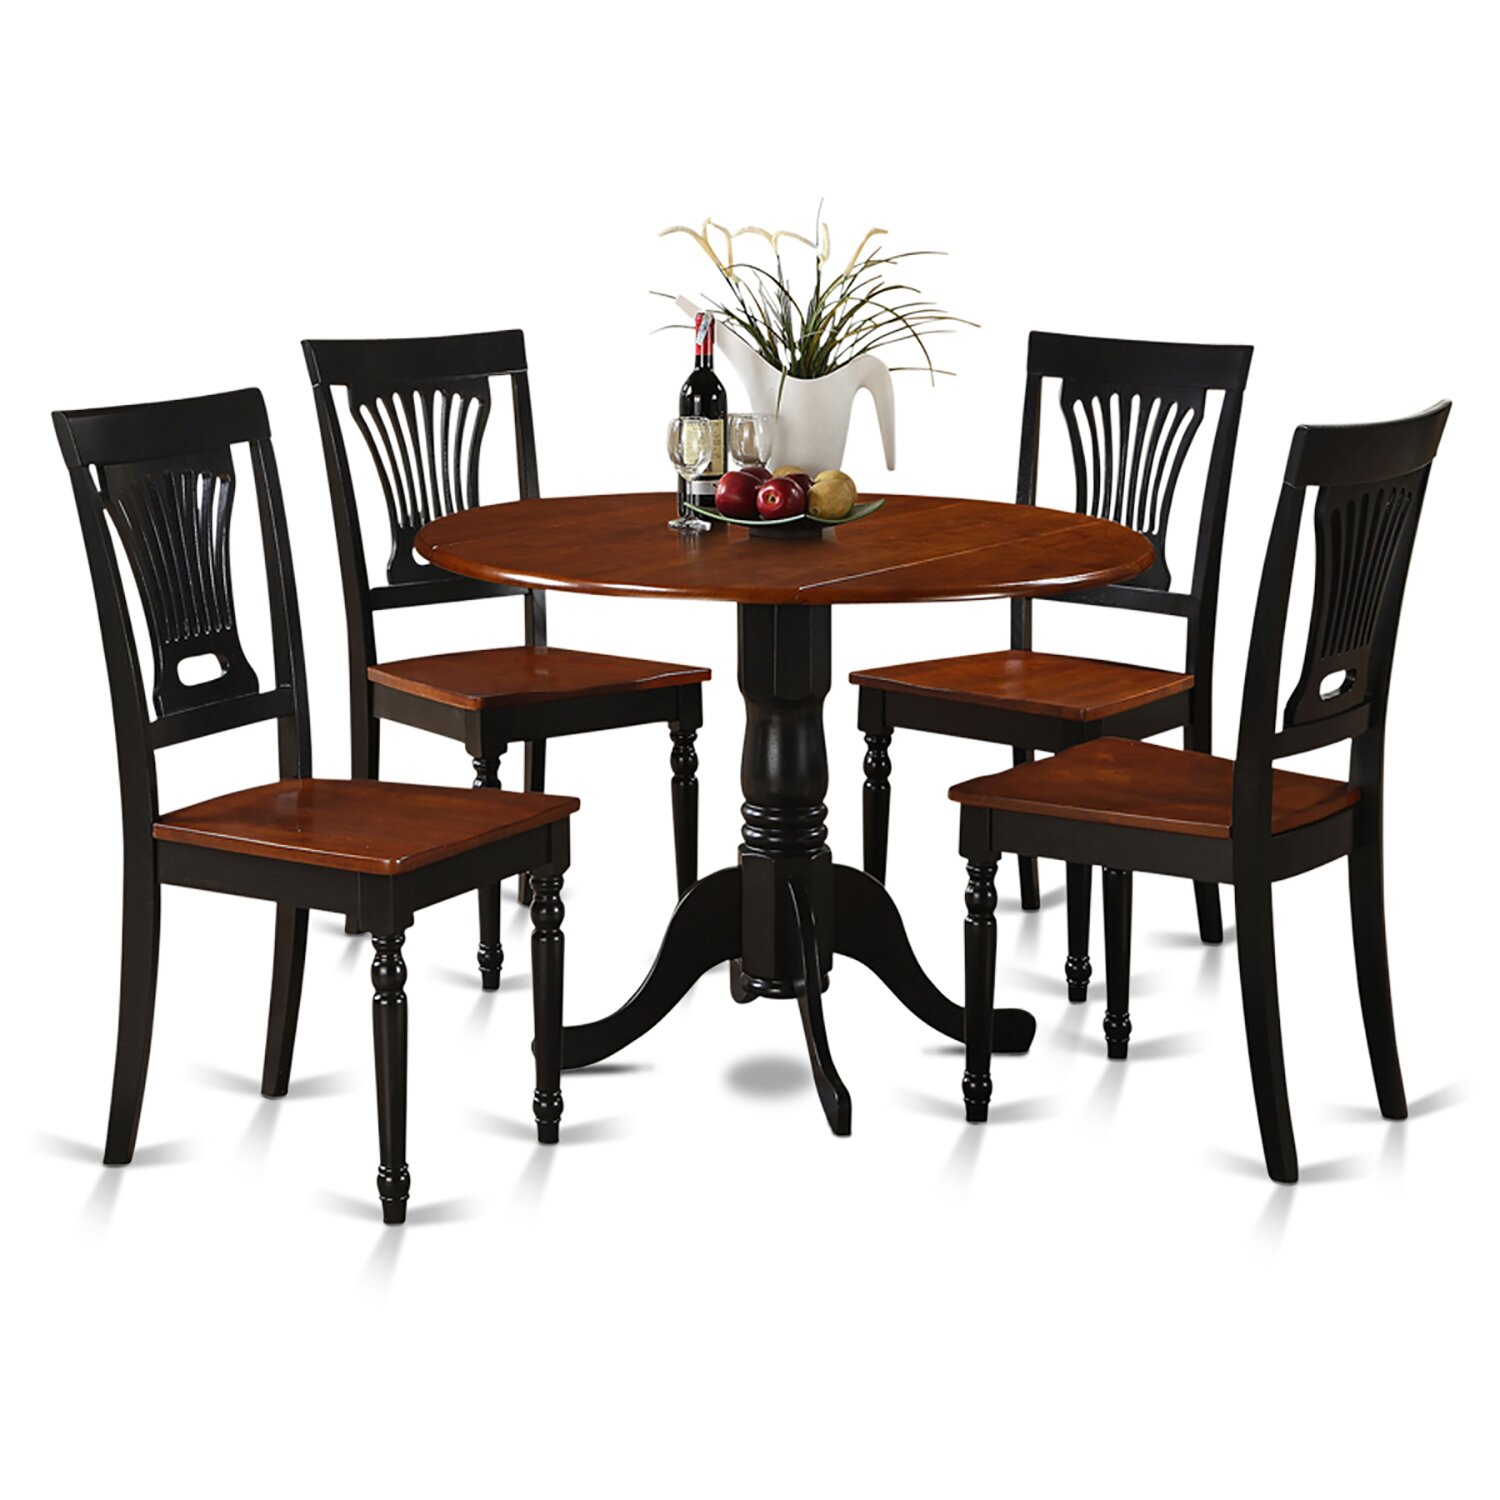 Wooden importers dublin 5 piece dining set reviews wayfair for Small kitchen table with 4 chairs